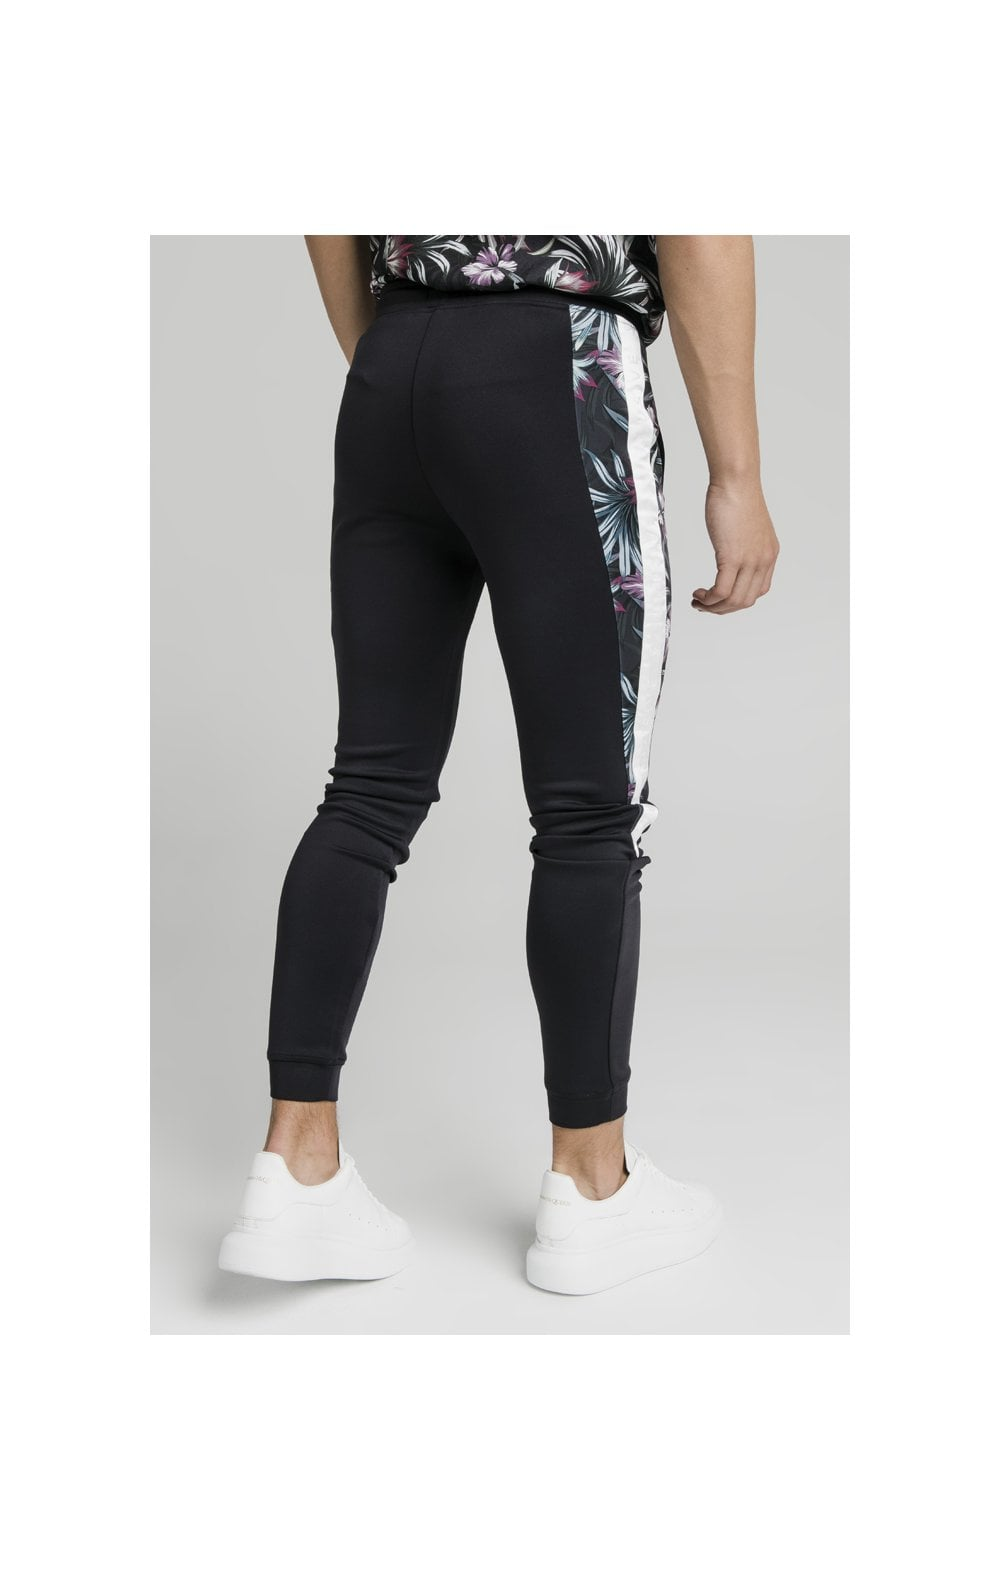 Illusive London Dark Tropical Tape Pants - Navy (6)